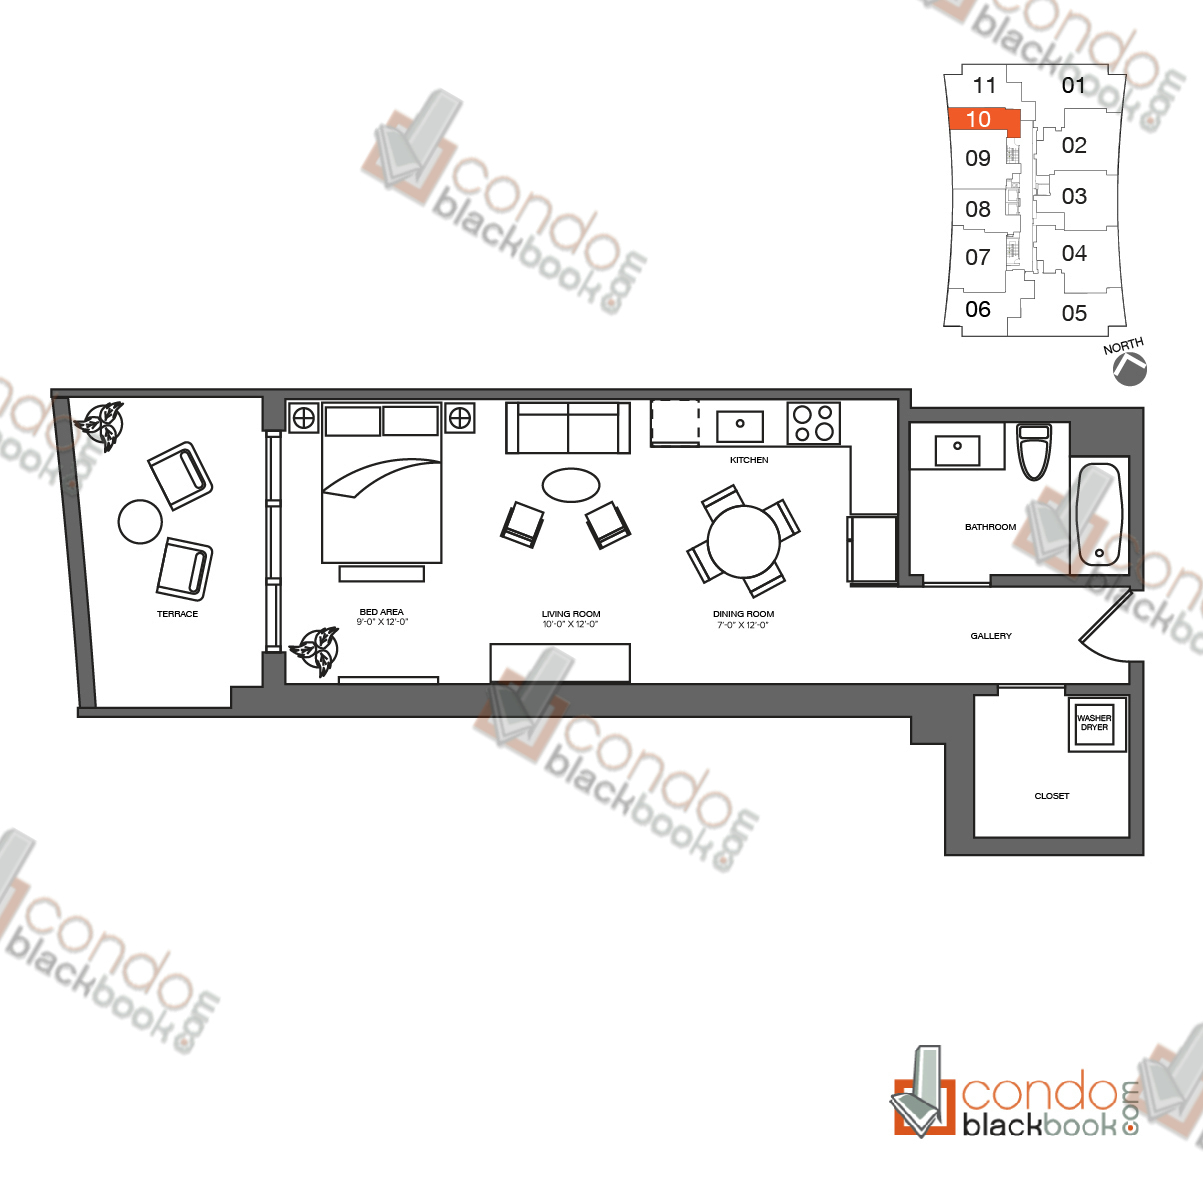 Floor plan for 1010 Brickell Brickell Miami, model I, line 10, 1/1 bedrooms, 646 sq ft